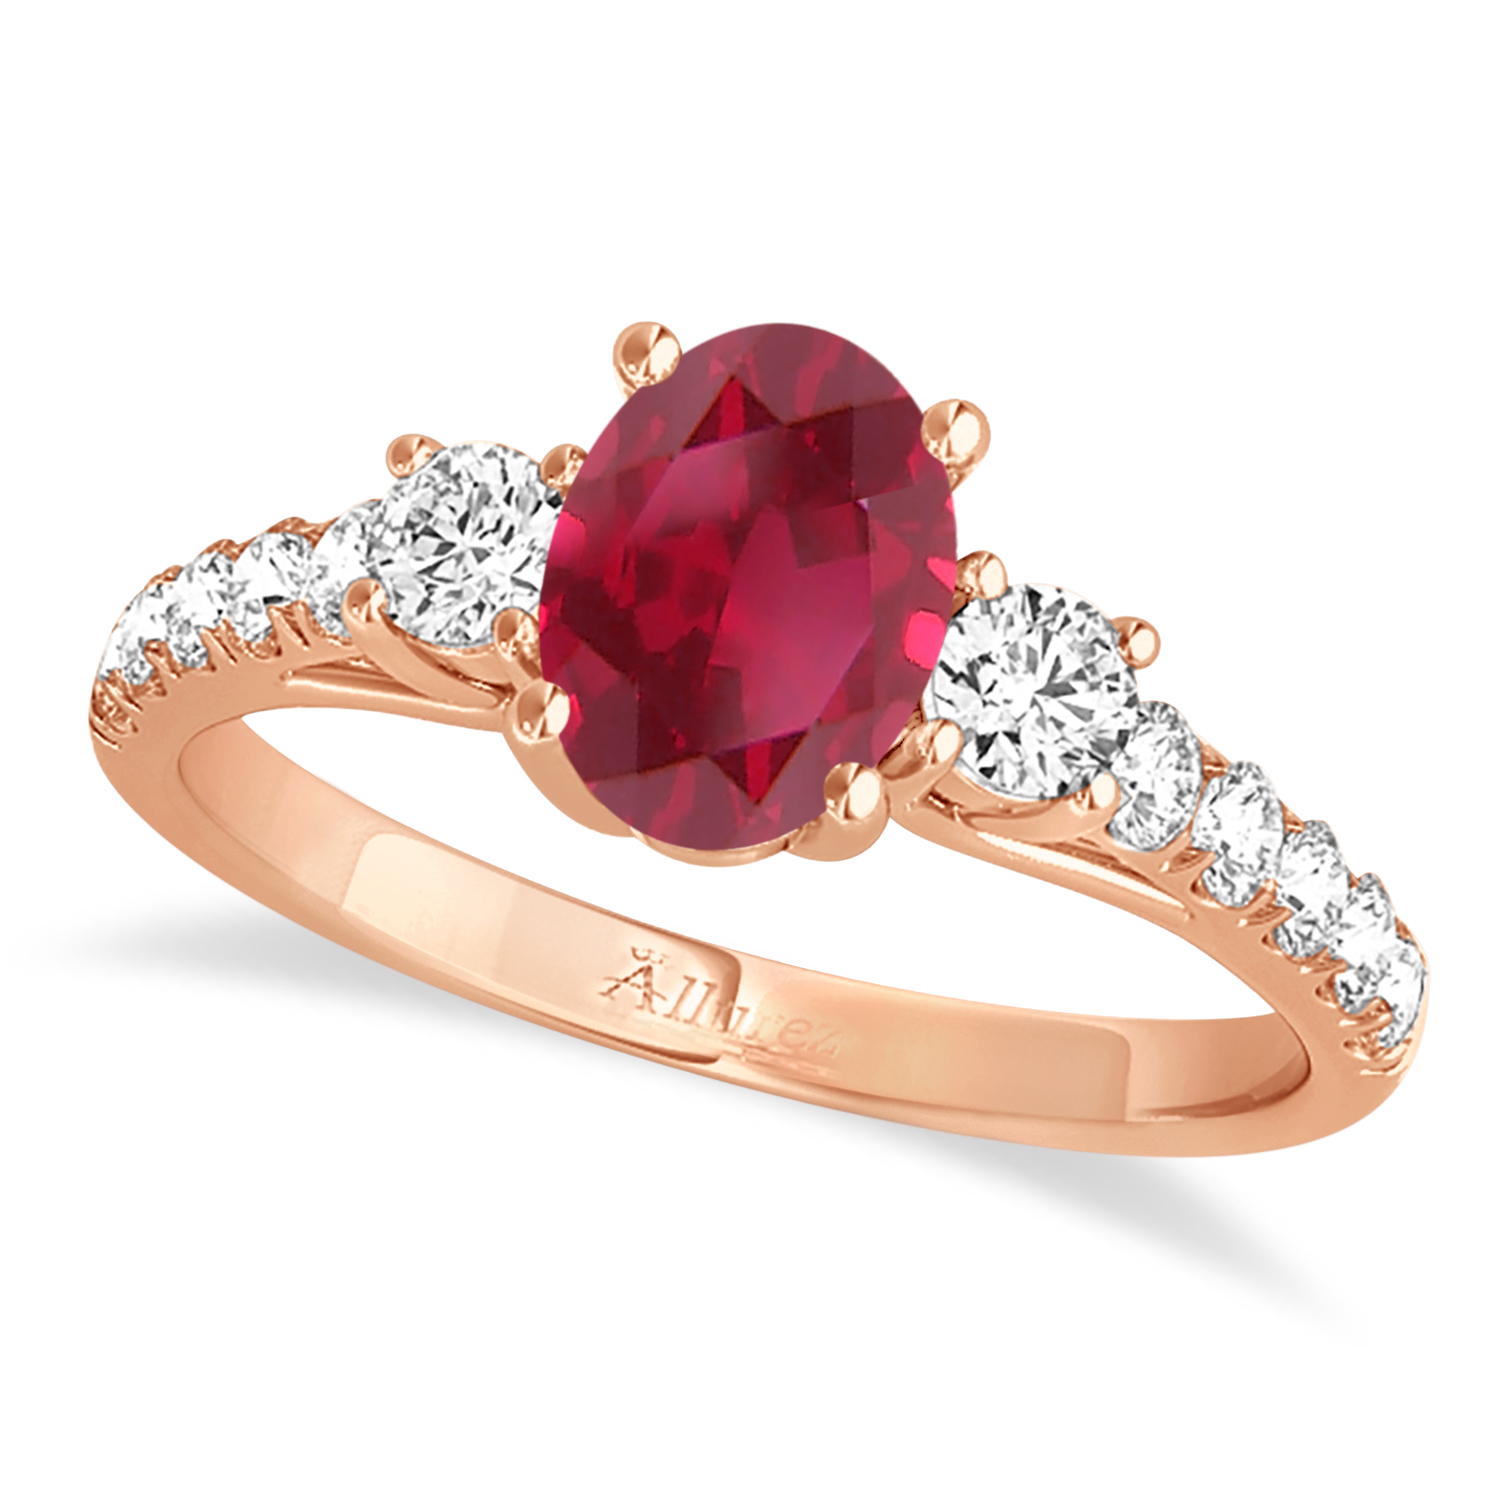 Oval Cut Ruby & Diamond Engagement Ring 14k Rose Gold (1.40ct)